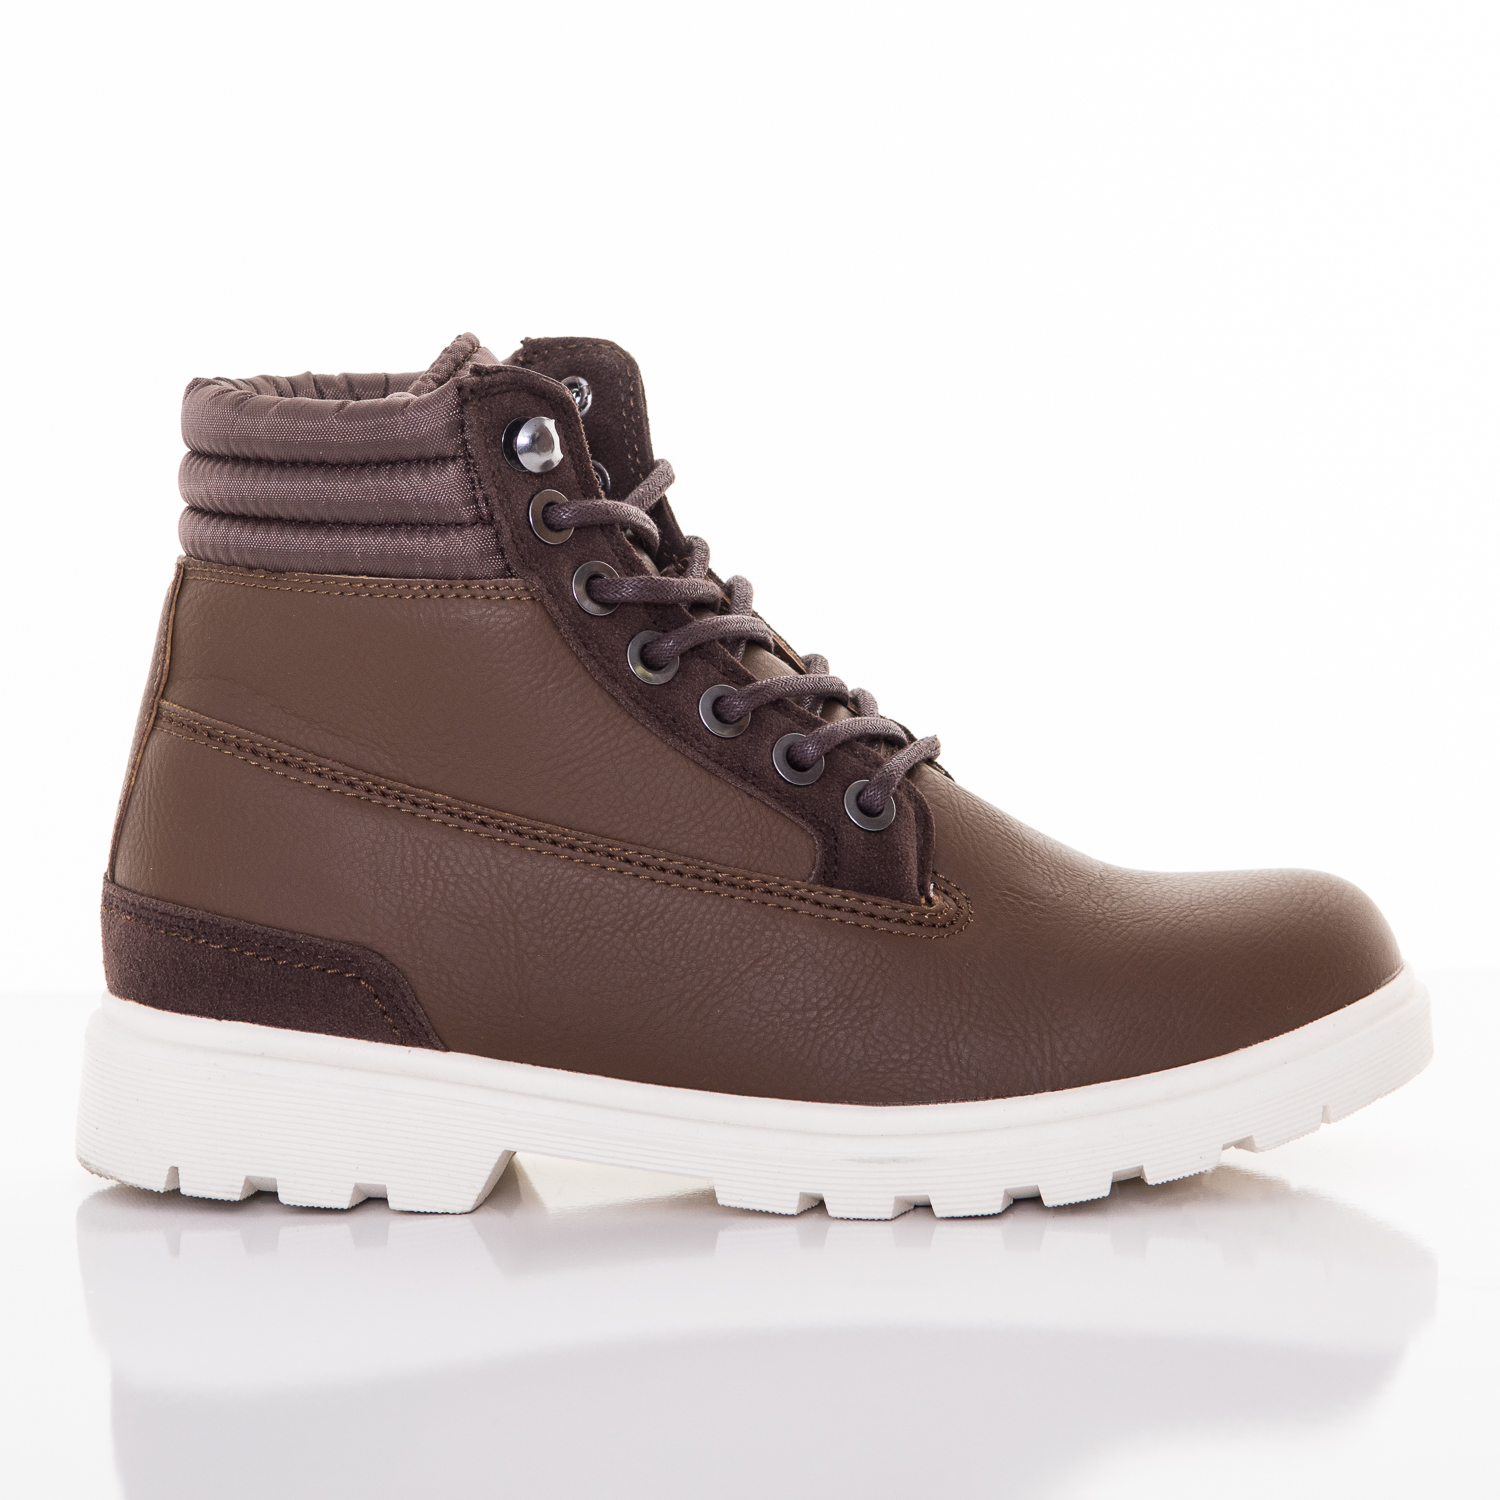 Zimná obuv Urban Classics Winter Boots Brown Darkbrown 45